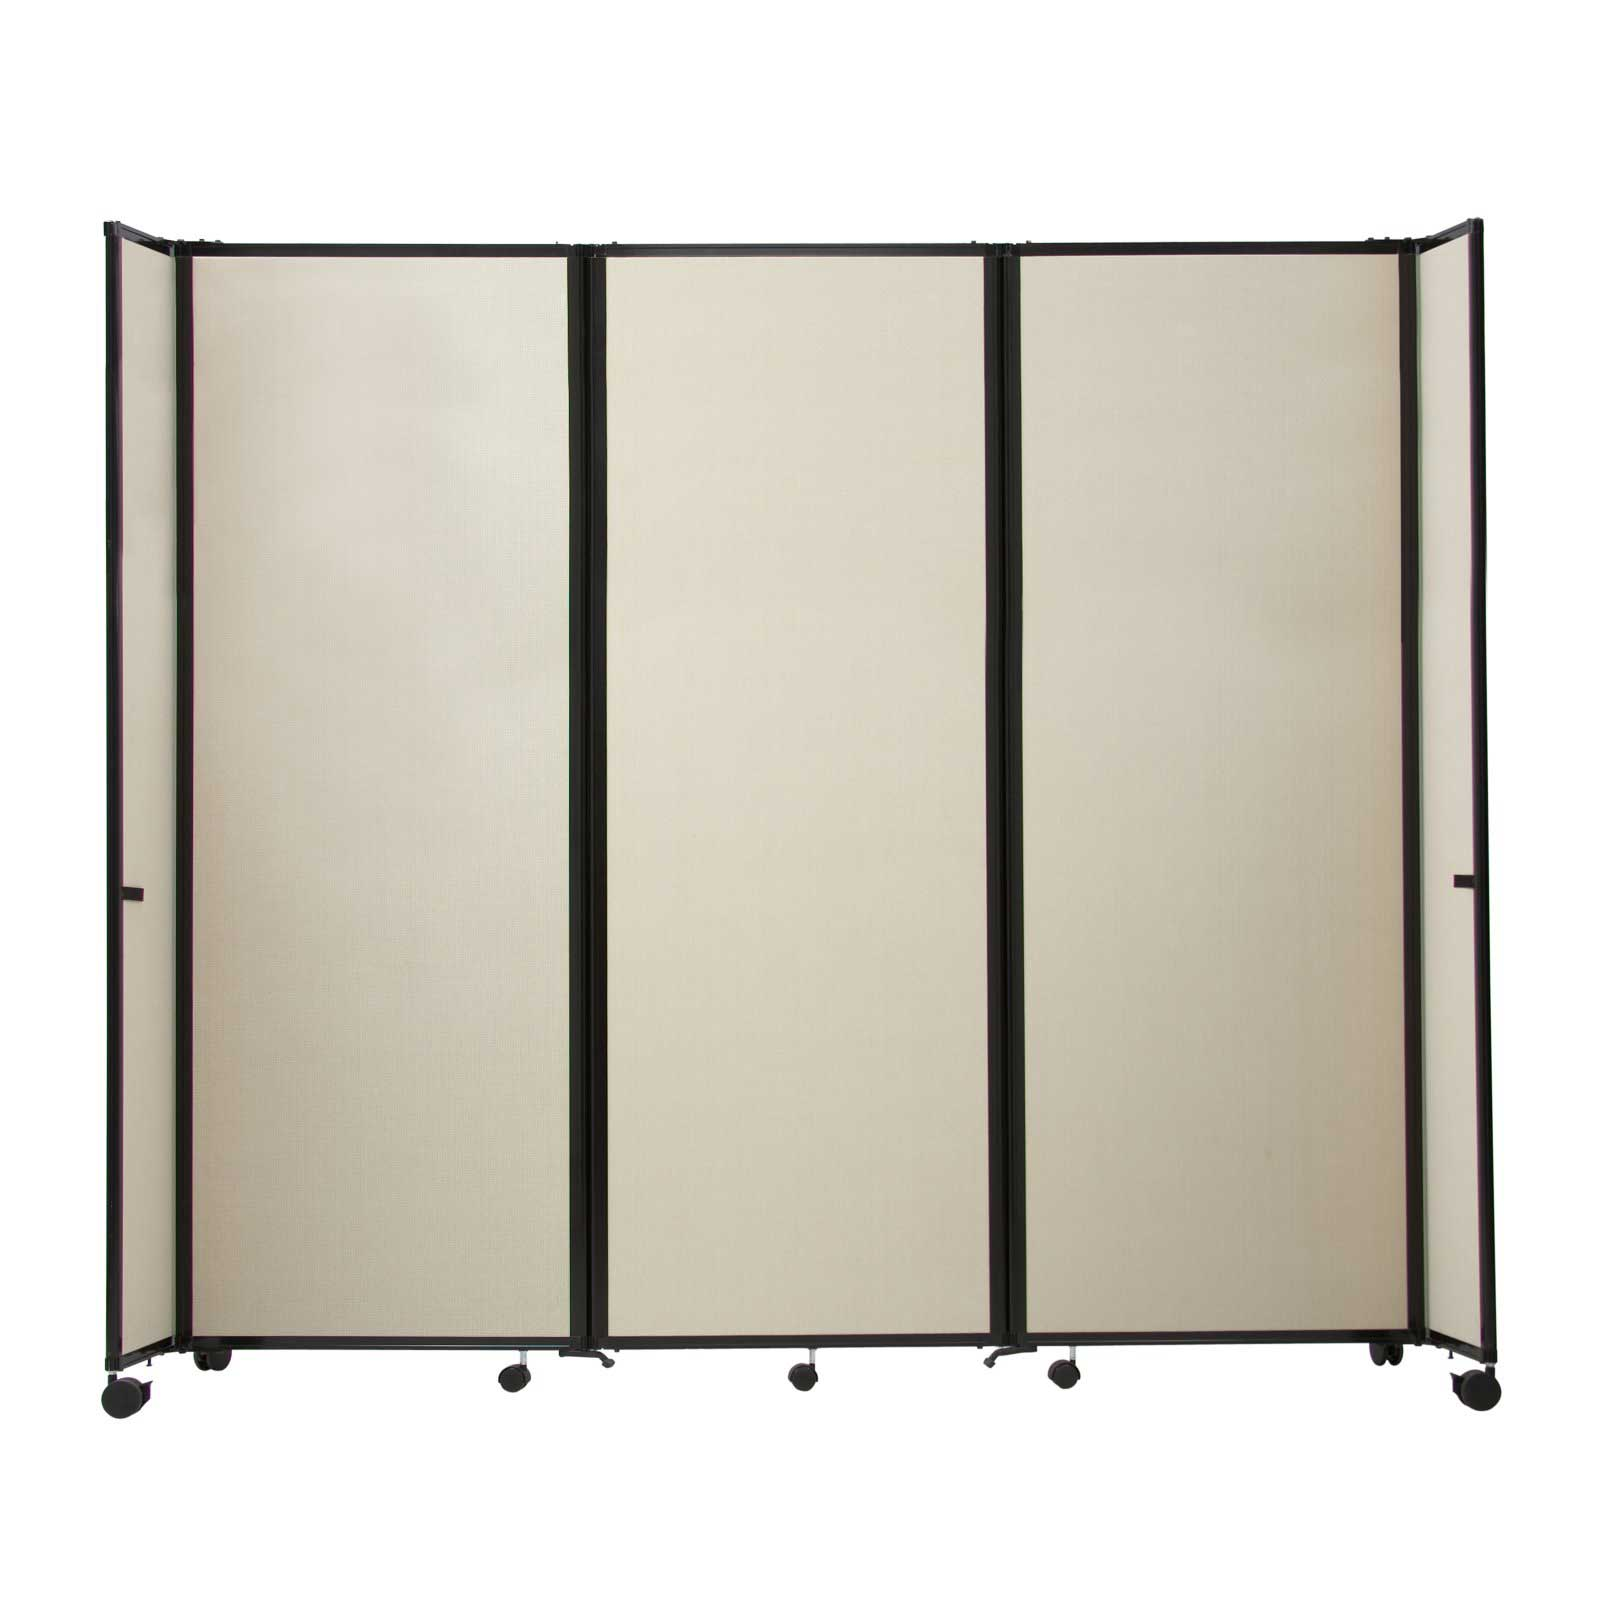 wall dividers on wheels photo - 5